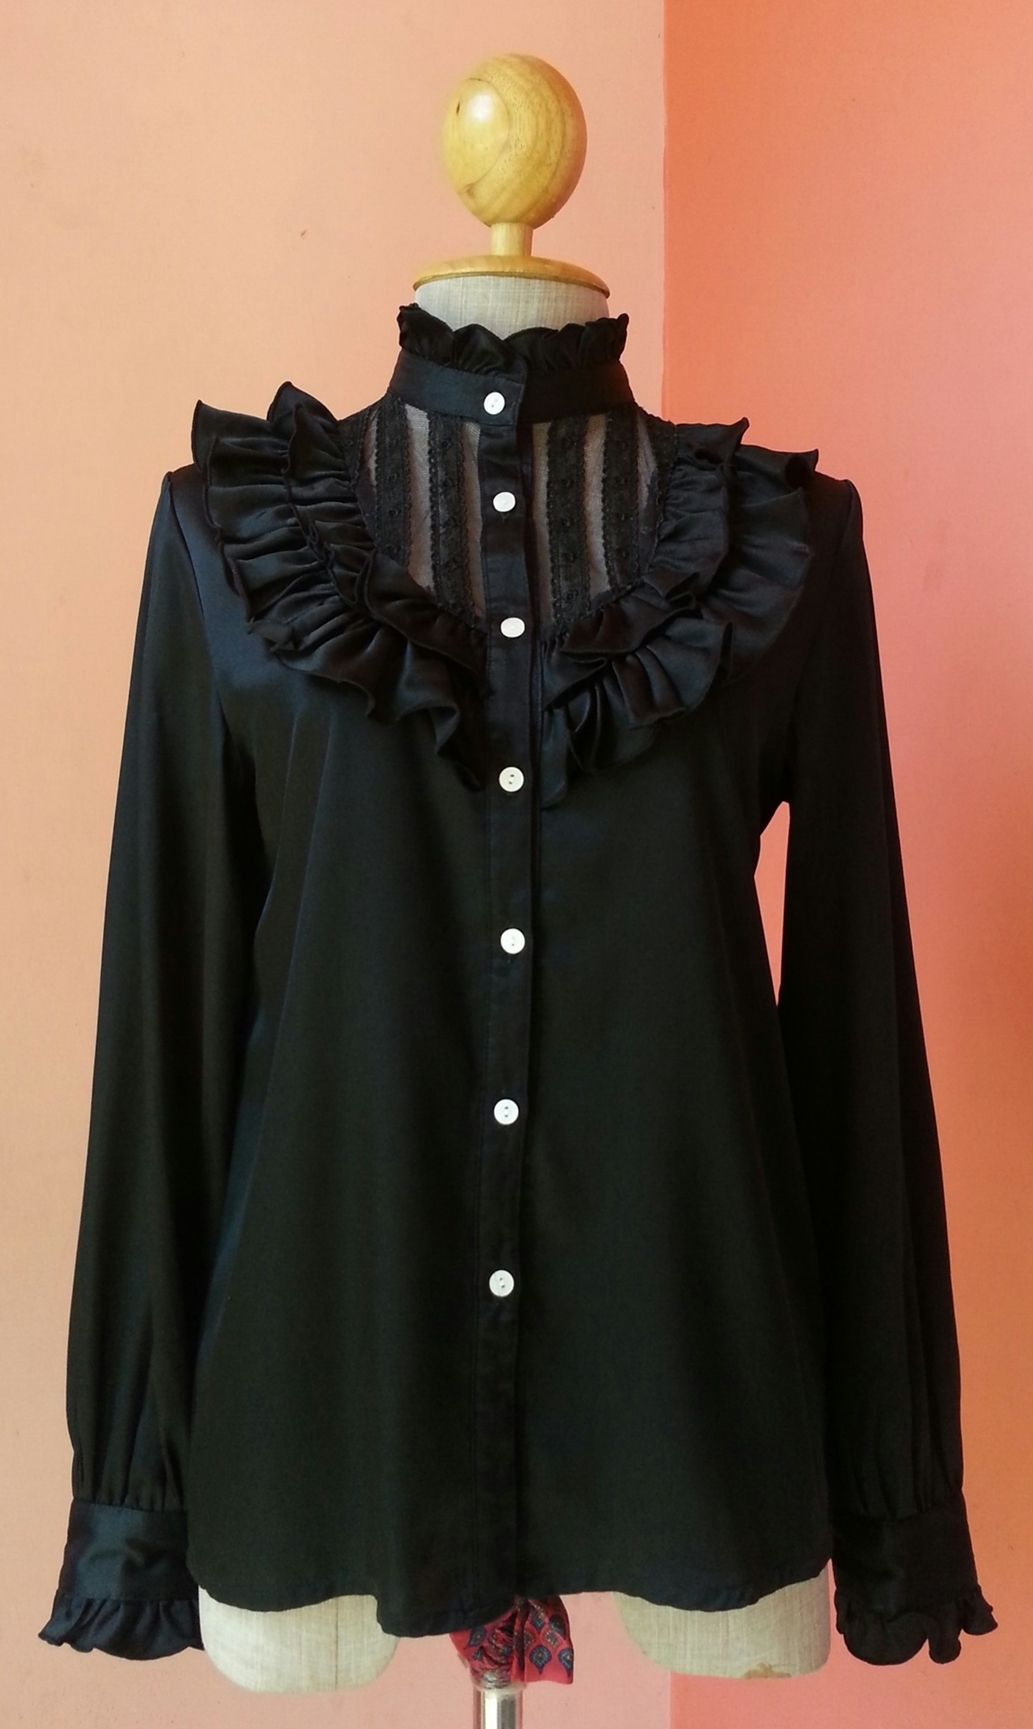 fdd0e07a5e9b0 Victorian Top Vintage 80s Black Top Retro Top Womens Blouses 1980s Black  Polyester Japanese Blouse With Long Sleeve